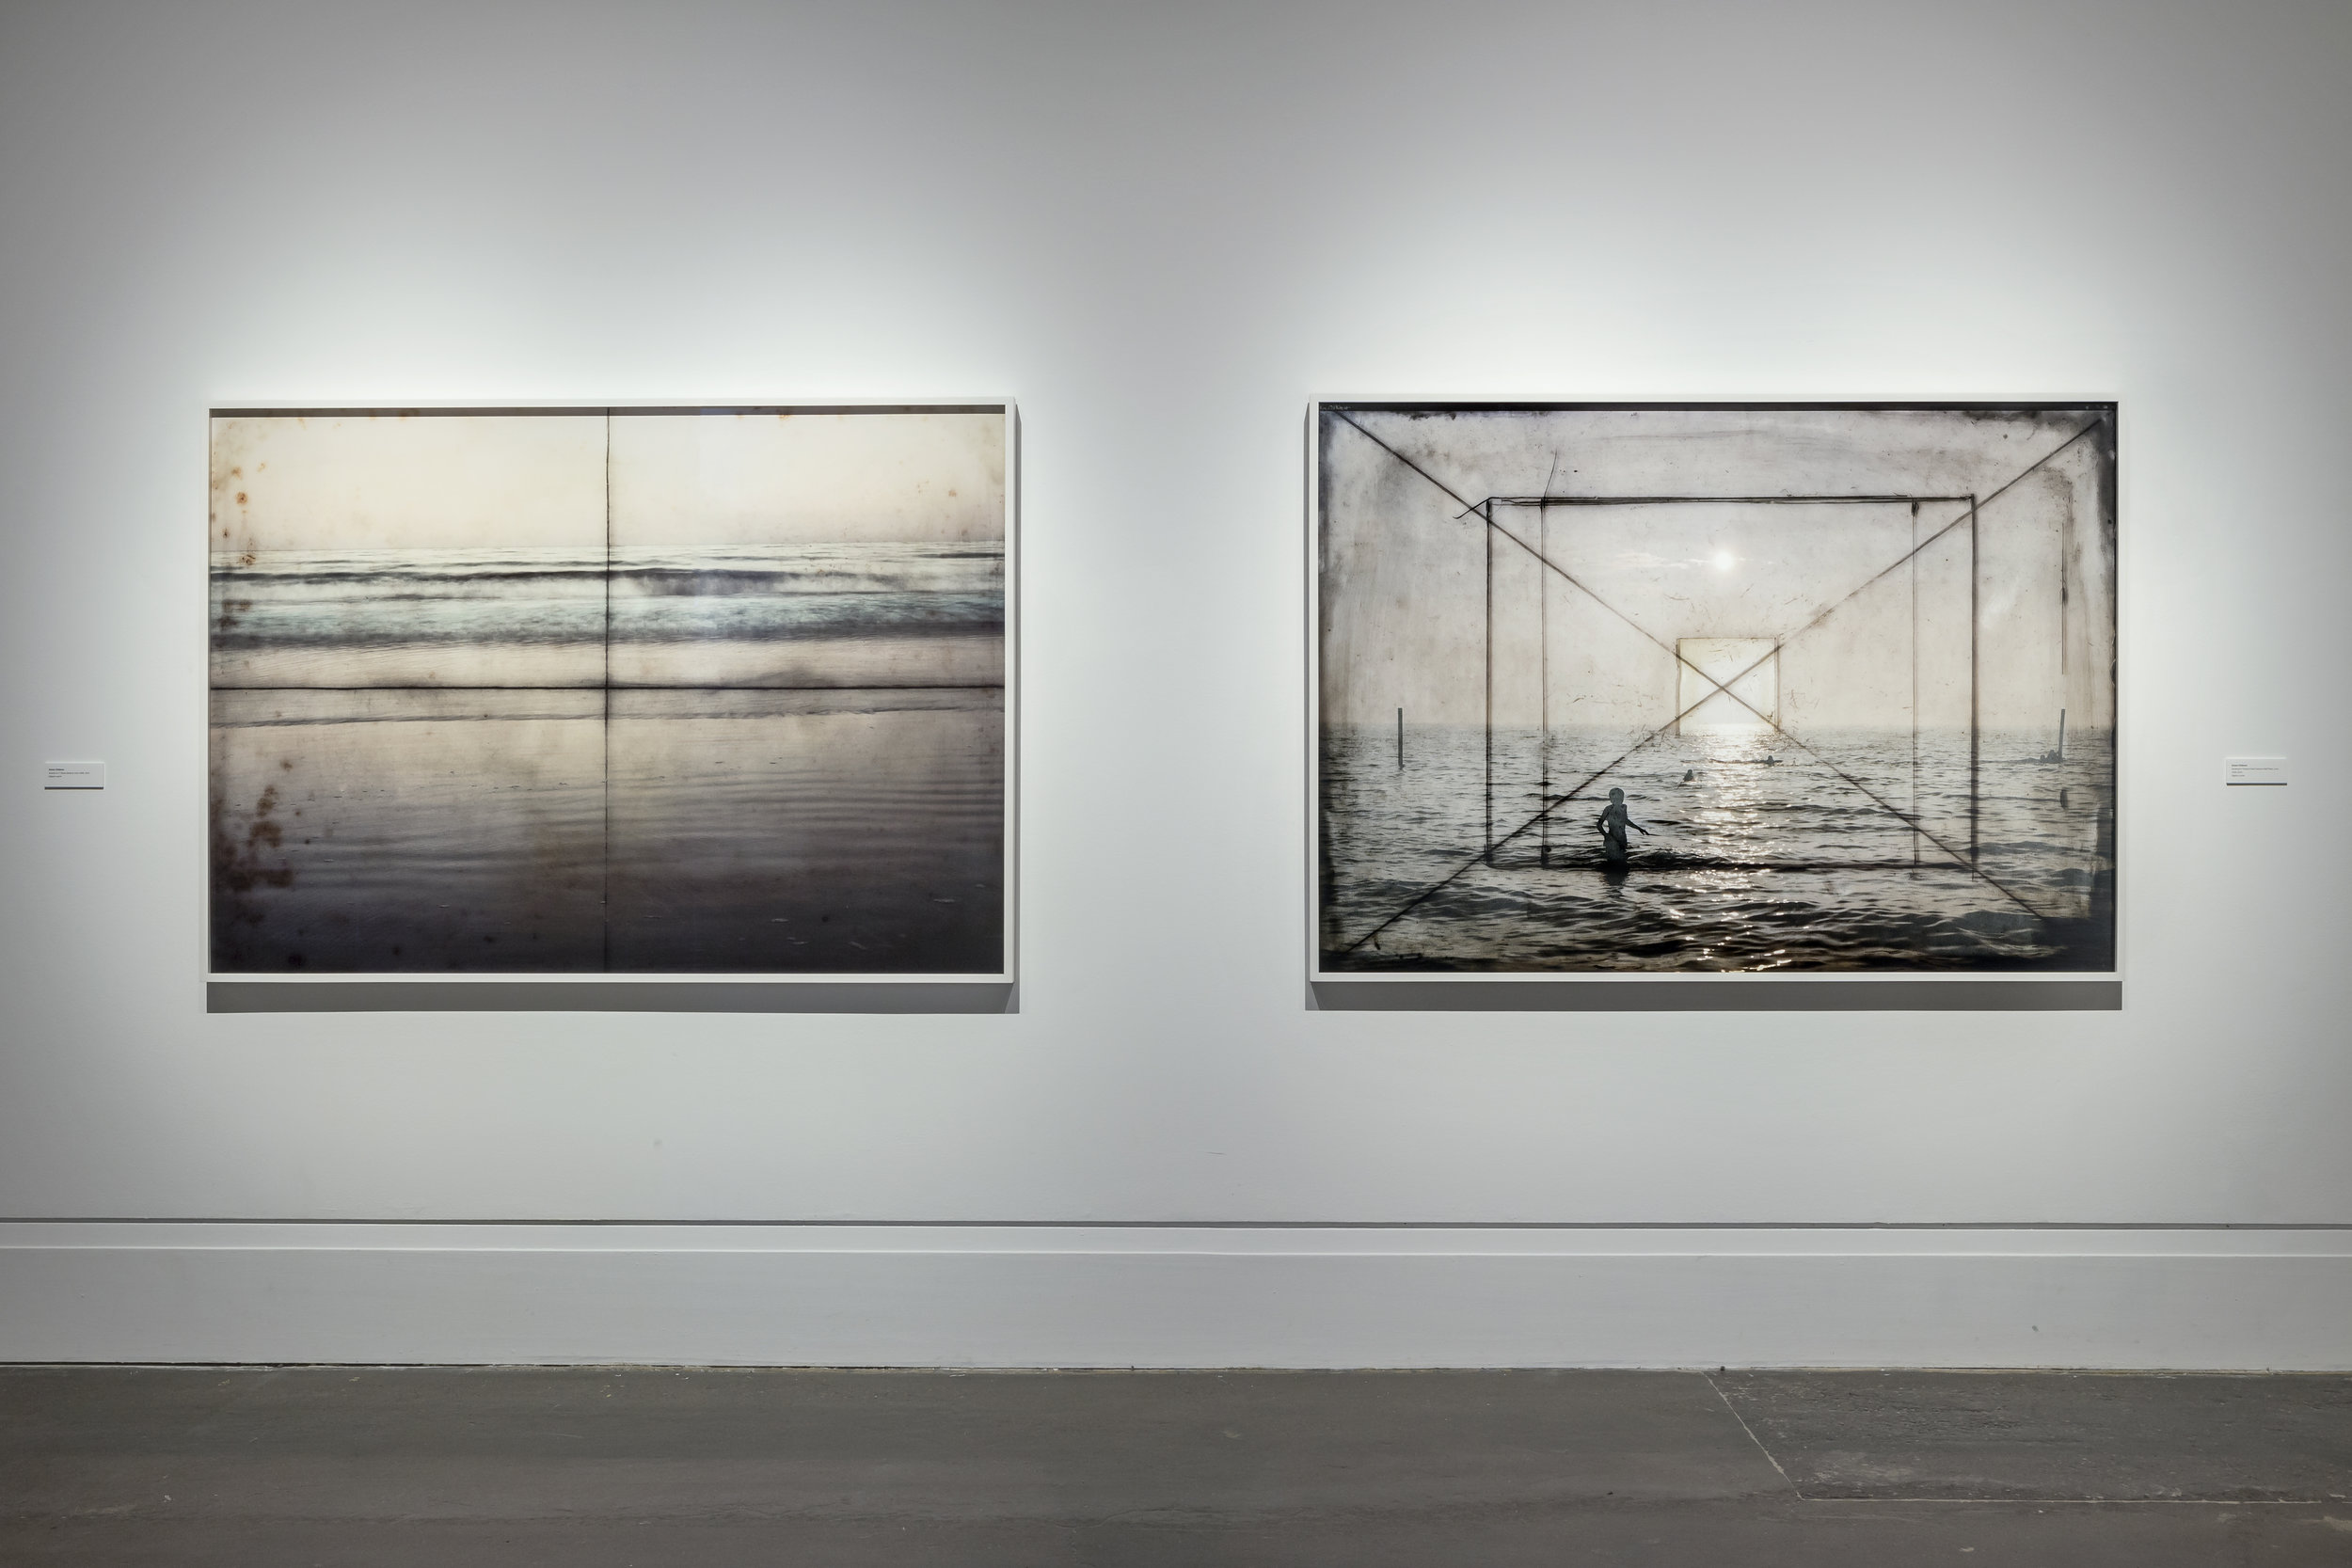 The View From Here , Main Gallery, Art Gallery of Mississauga. Susan Dobson, Seneca 5 x 7 View Camera, circa 1940 , 2013.  Sanderson Tropical Field Camera Half Plate, circa 1920, 2014. Photo by Toni Hafkenscheid.